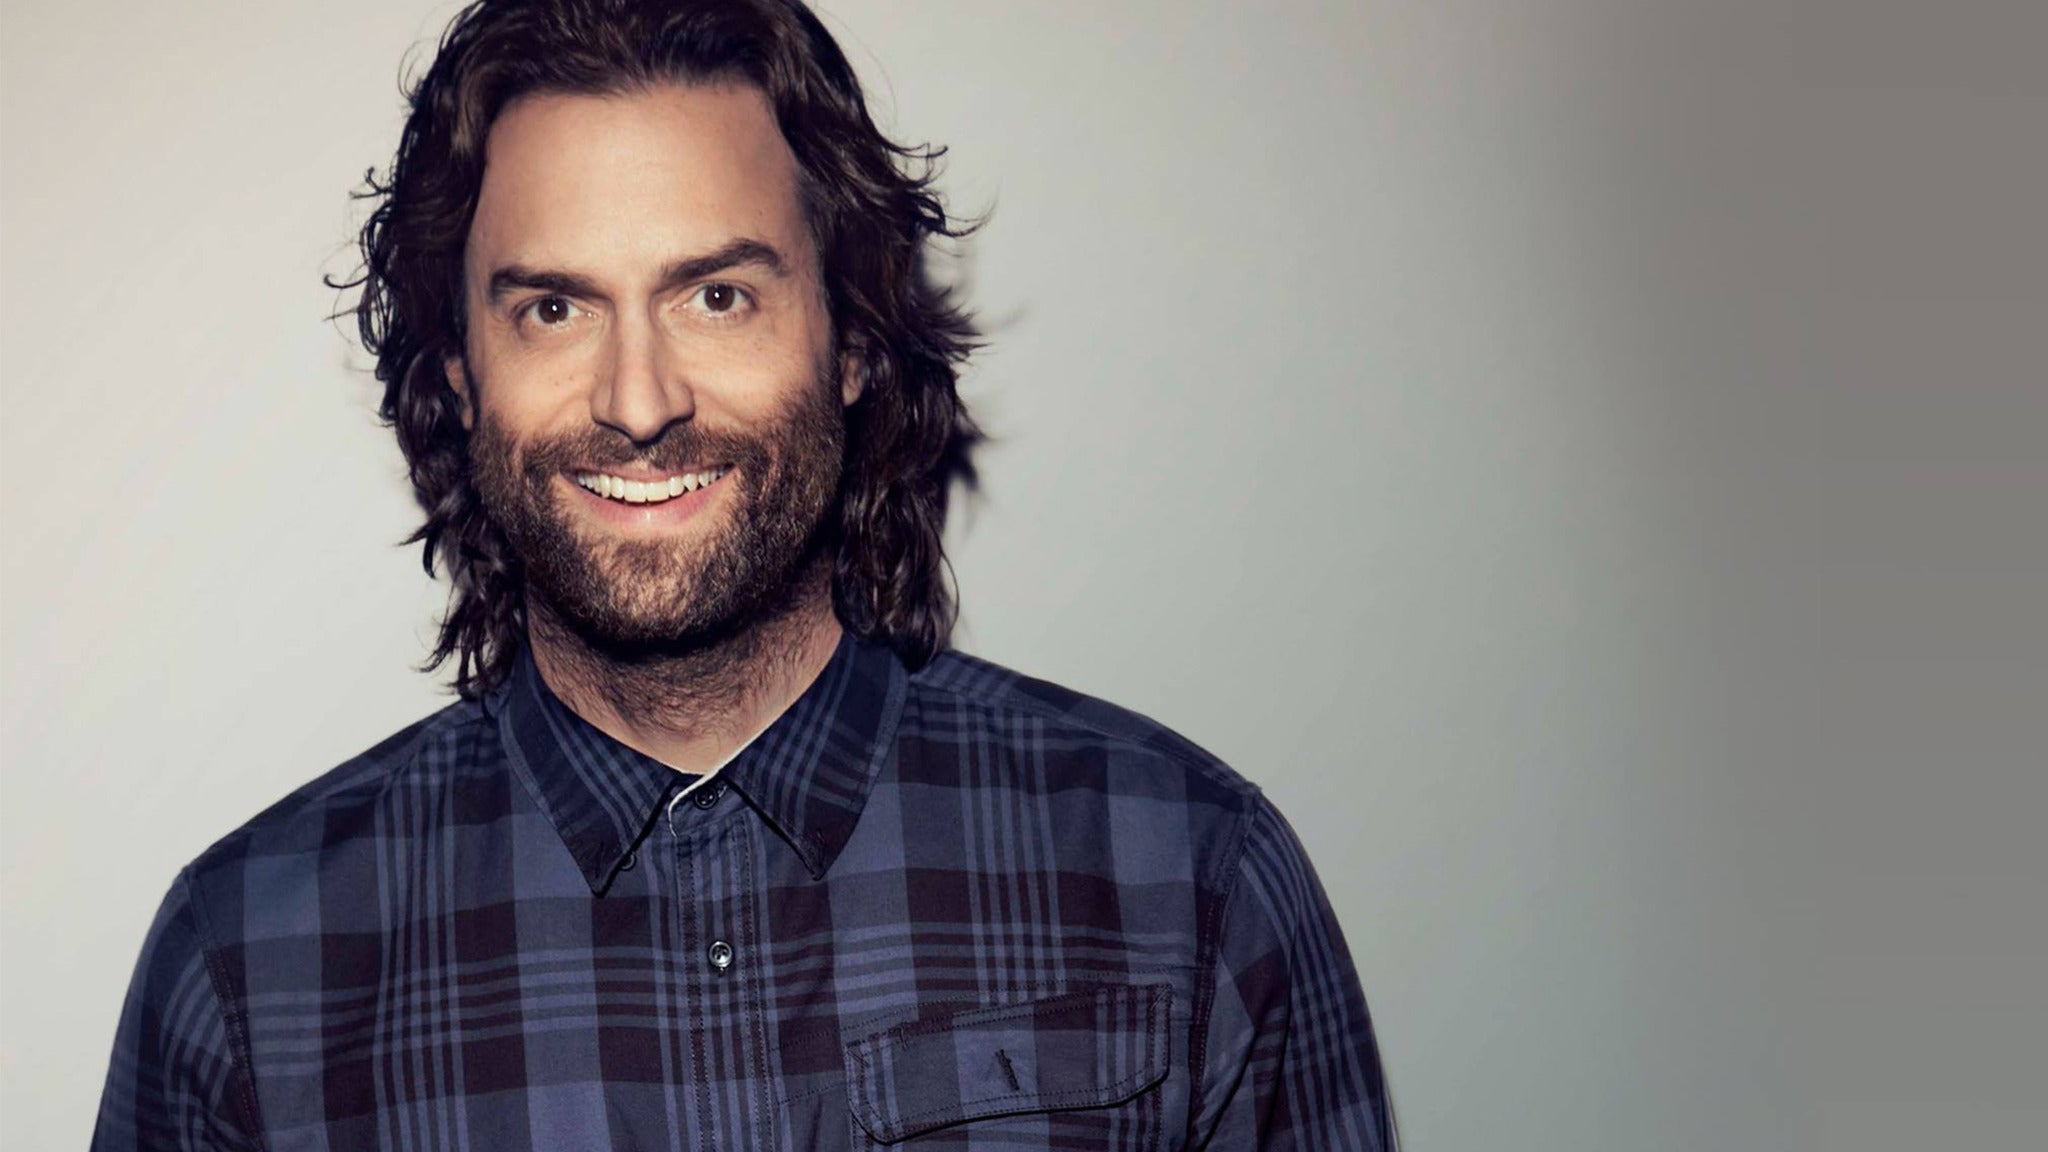 Chris D'Elia at Irvine Improv - Irvine, CA 92618